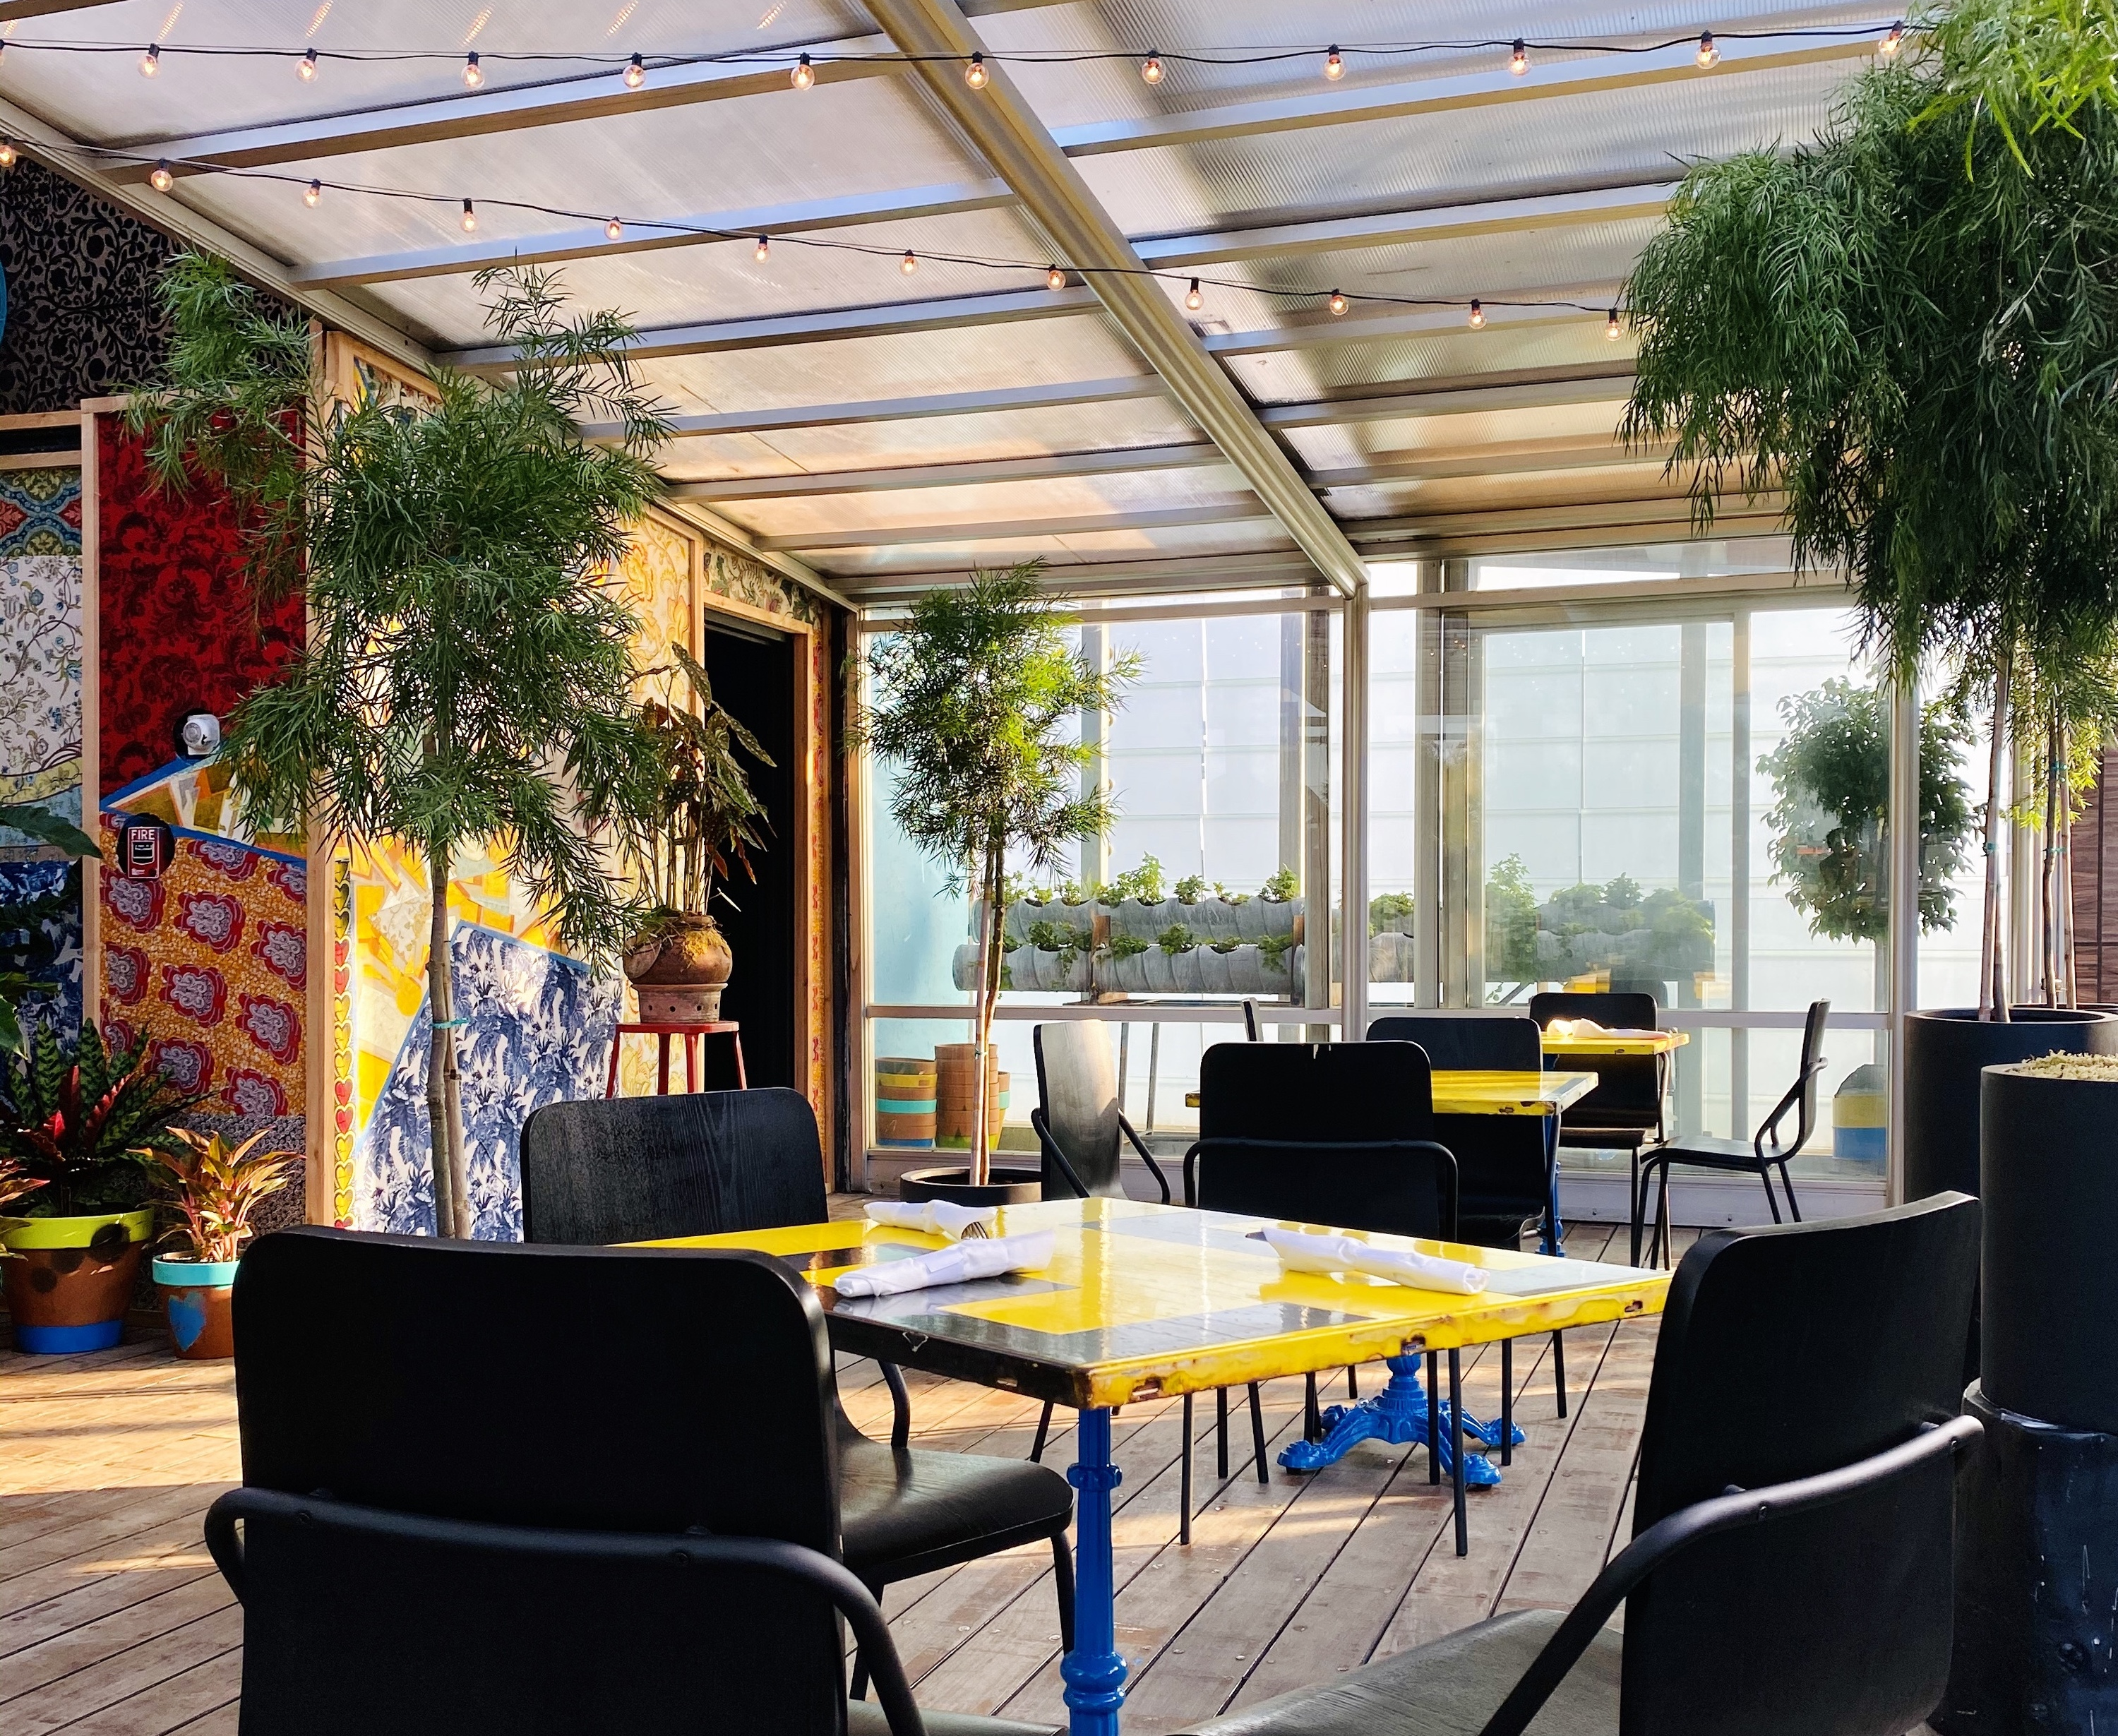 McCarren Hotel's new rooftop bar is a colorful tropical oasis